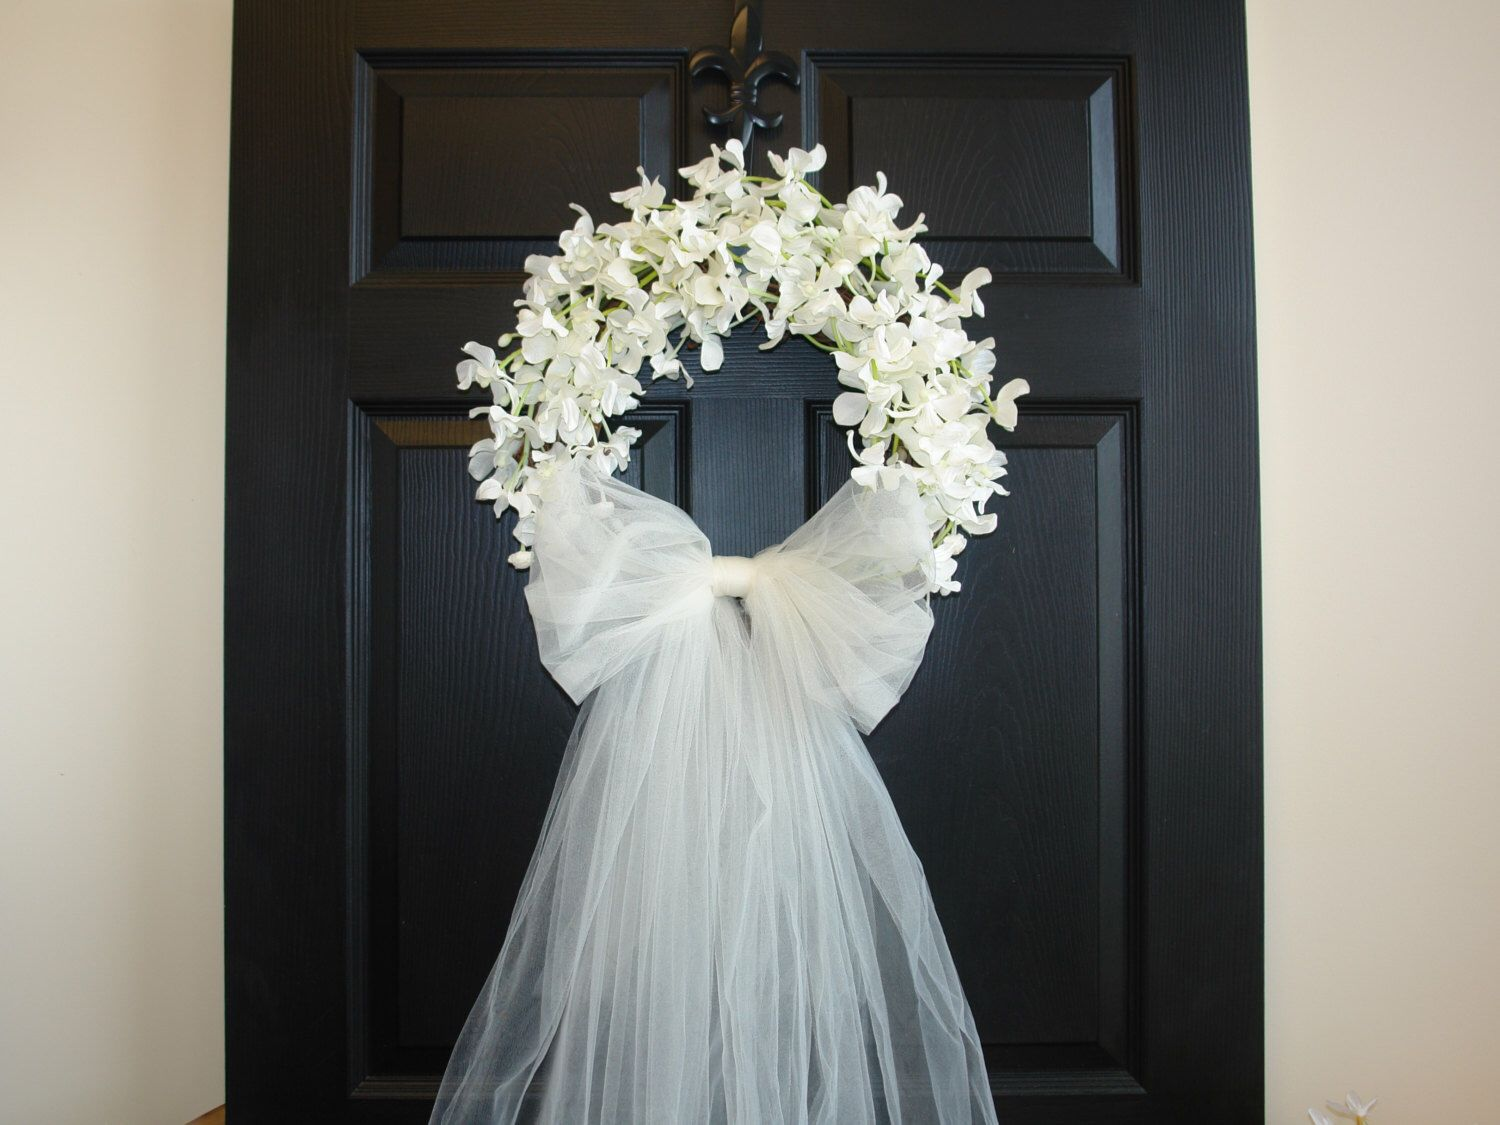 Weddings door wreaths first communion front door outdoors Wedding decoration house